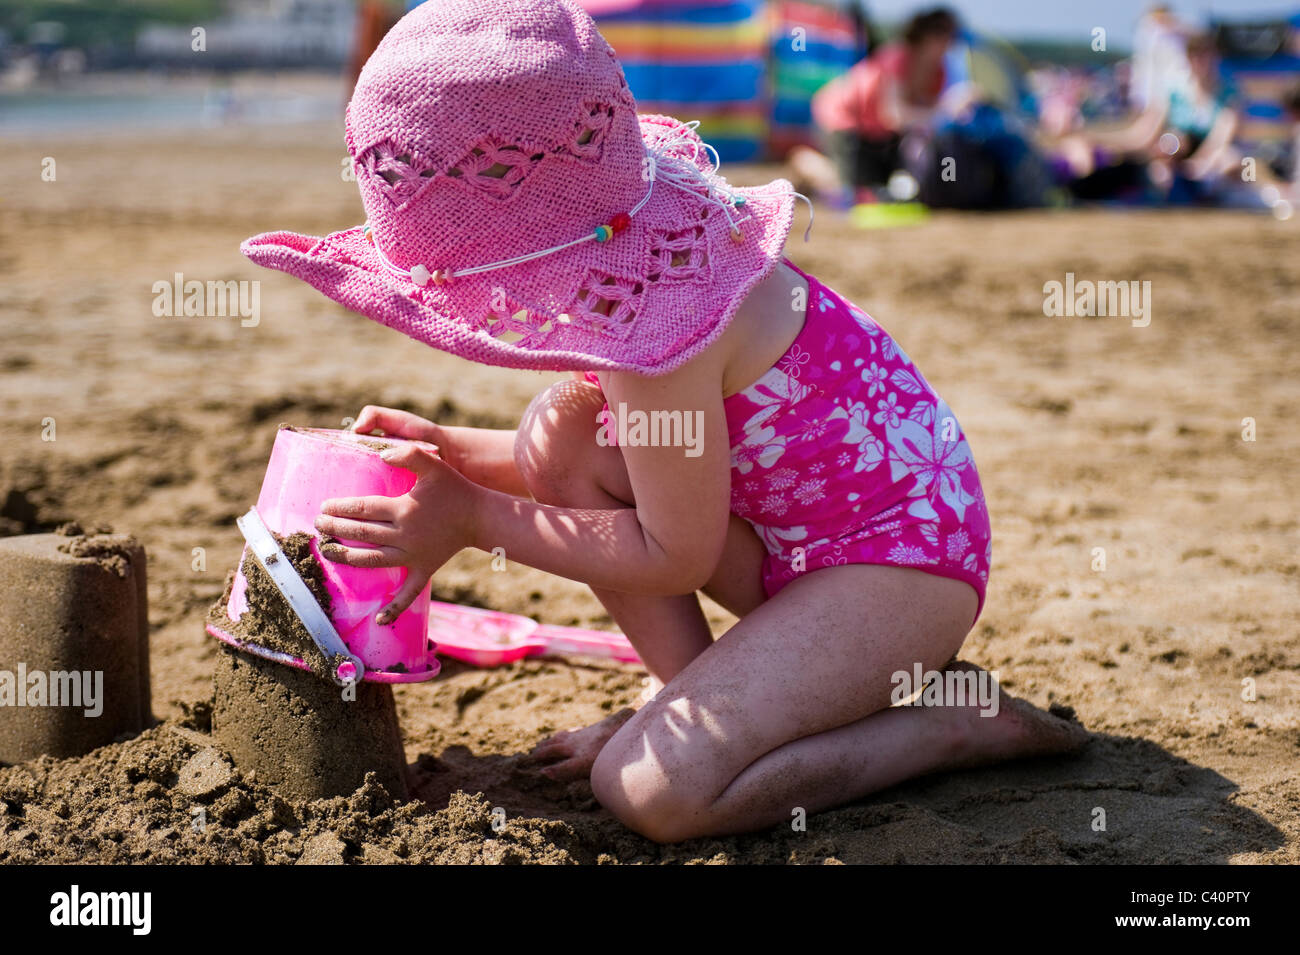 Horizontal portrait of a little girl building sandcastles on the beach on a sunny day. - Stock Image